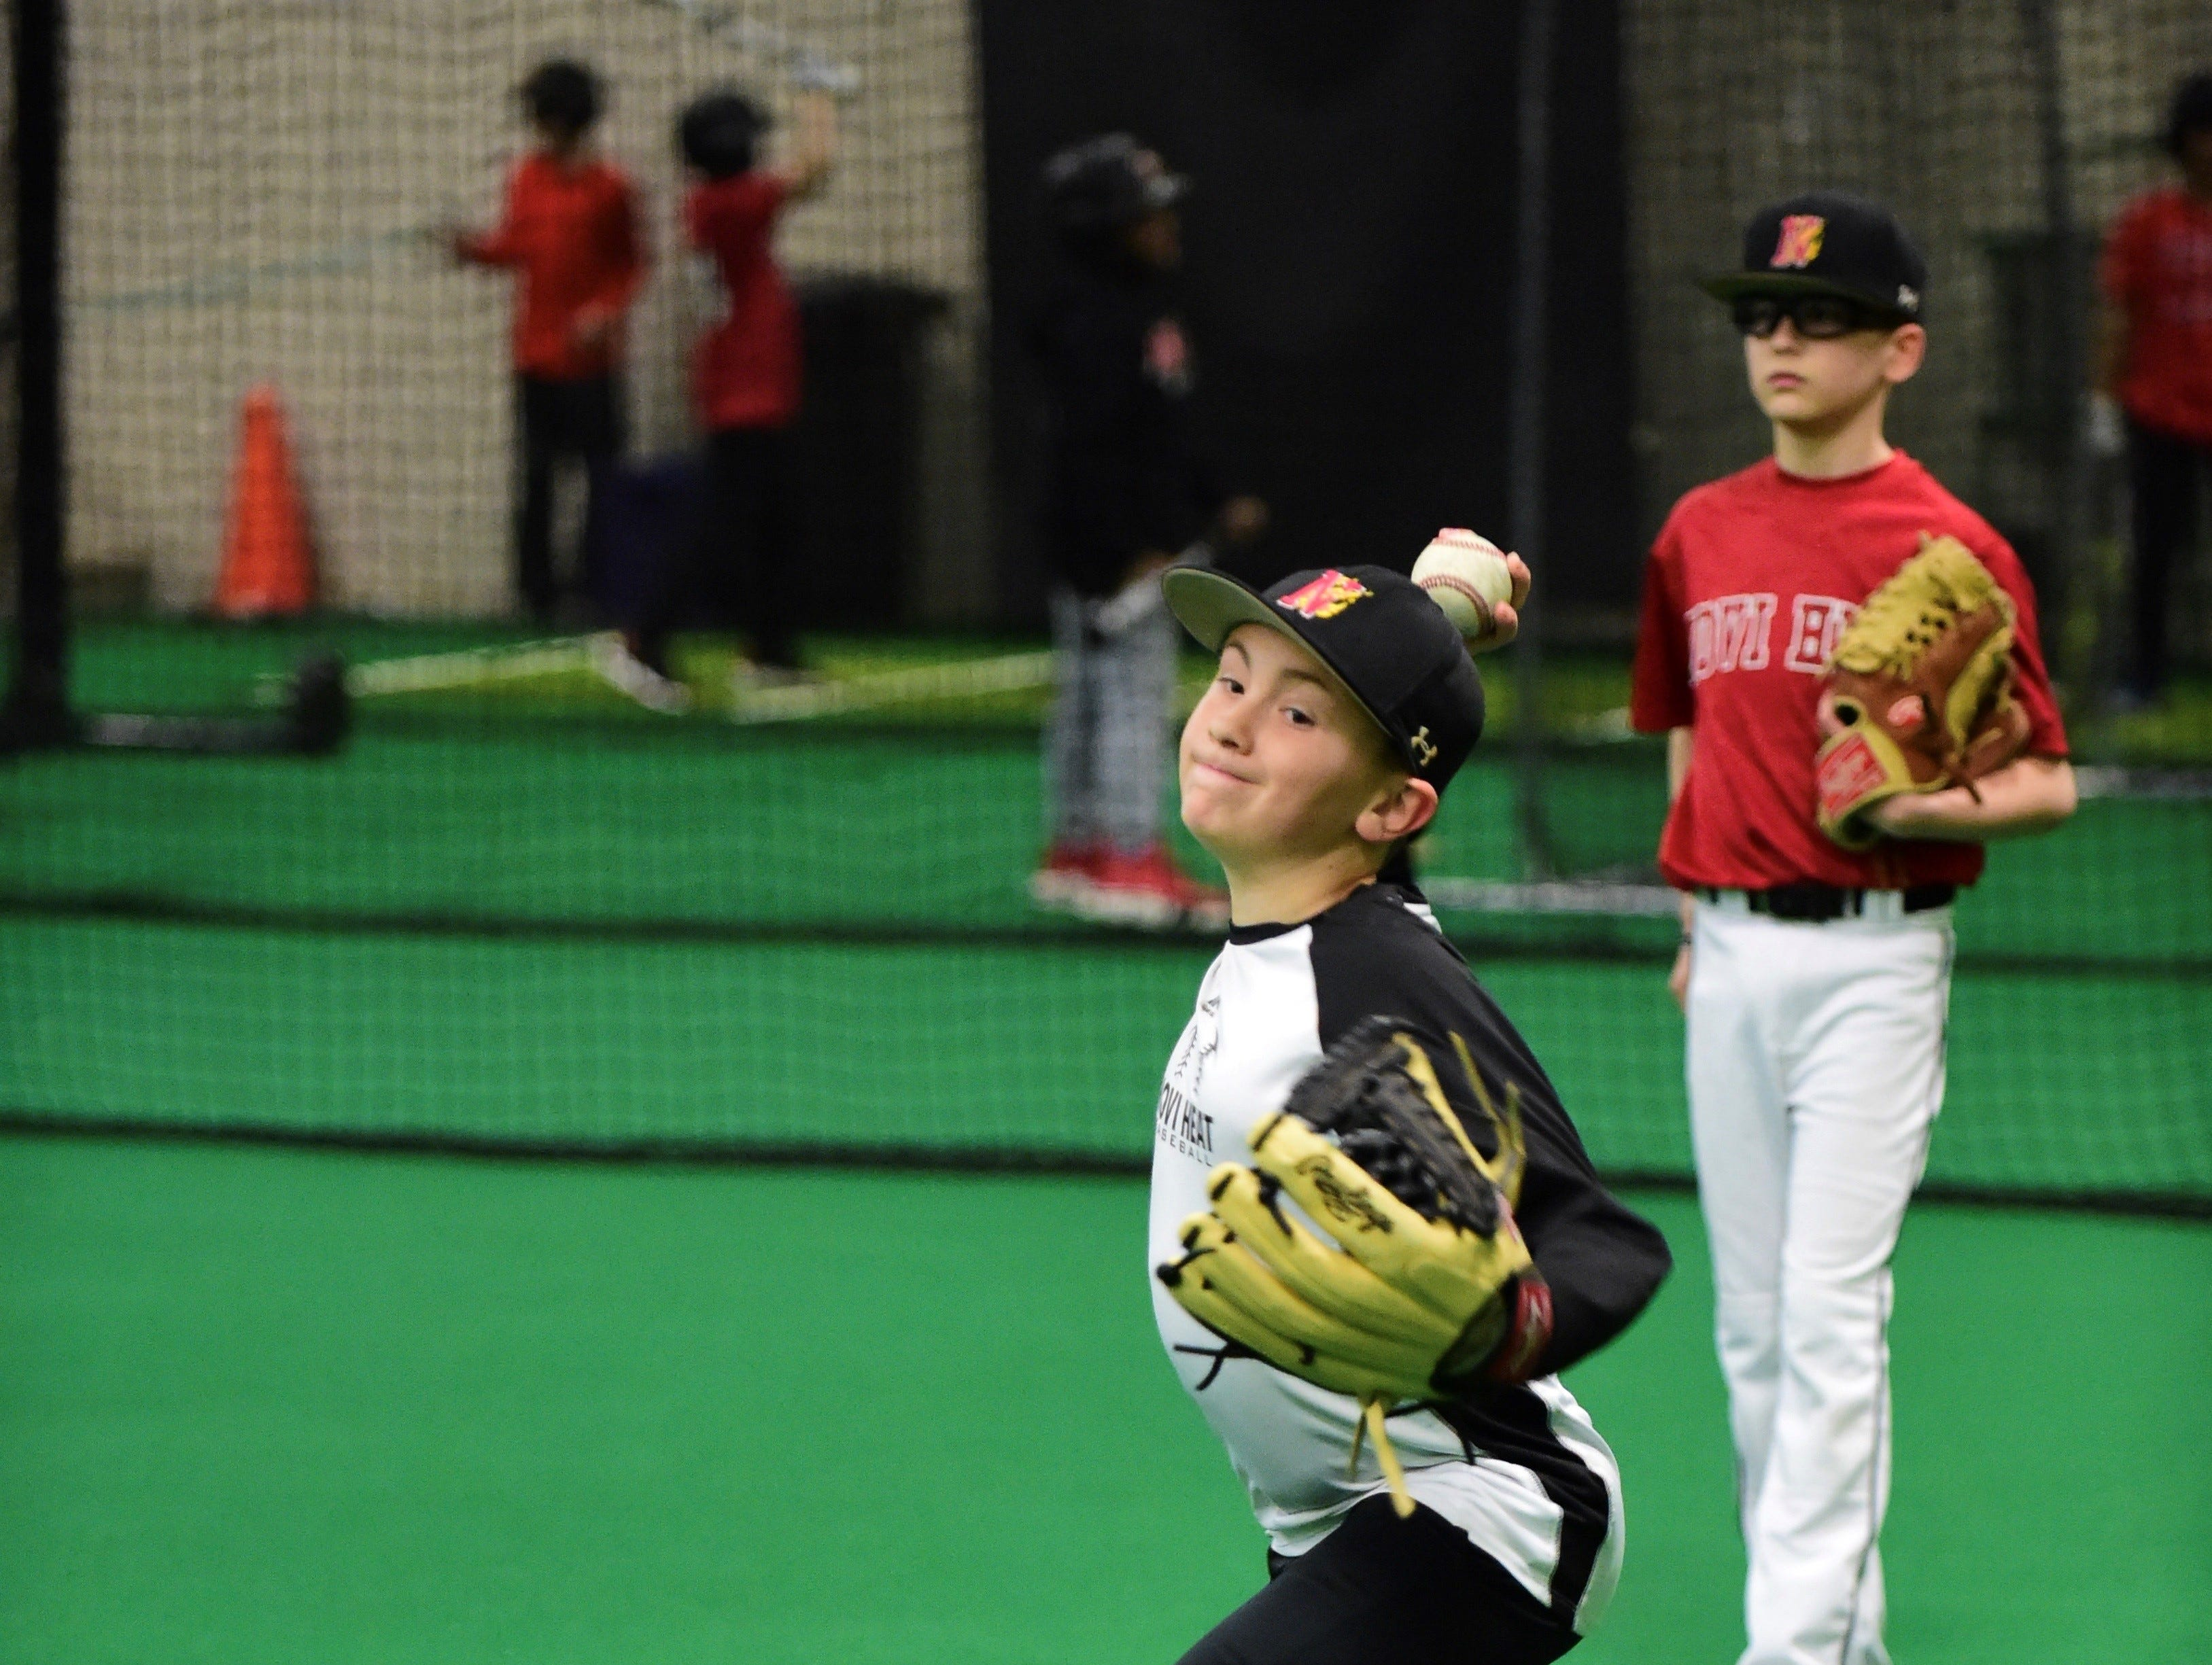 Jacob Durant shows off his pitching form at Thursday'a practice.